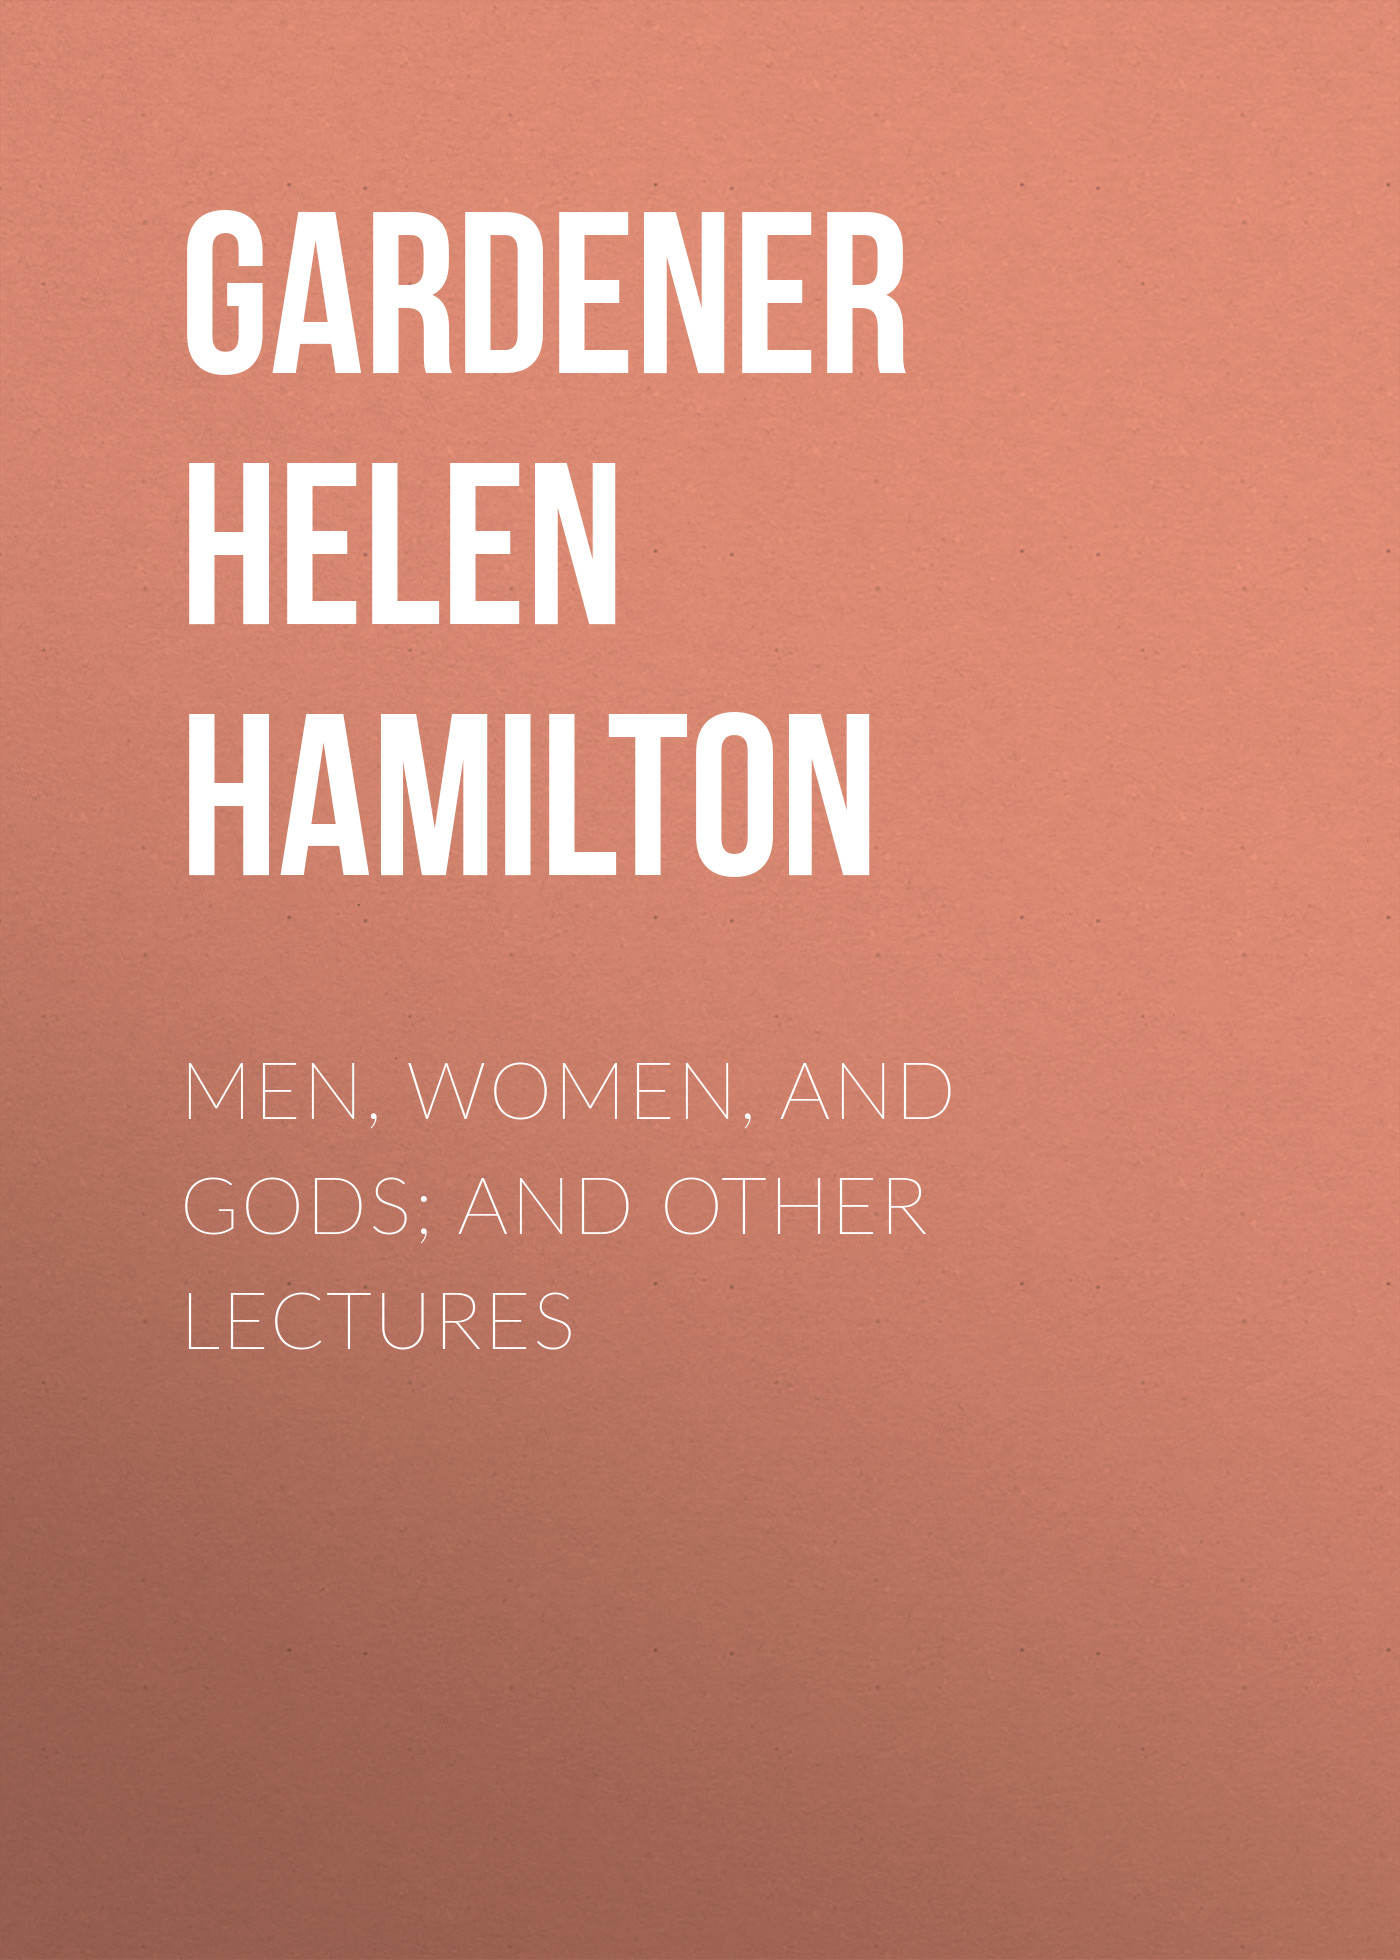 Фото - Gardener Helen Hamilton Men, Women, and Gods; and Other Lectures j b mozley lectures and other theological papers